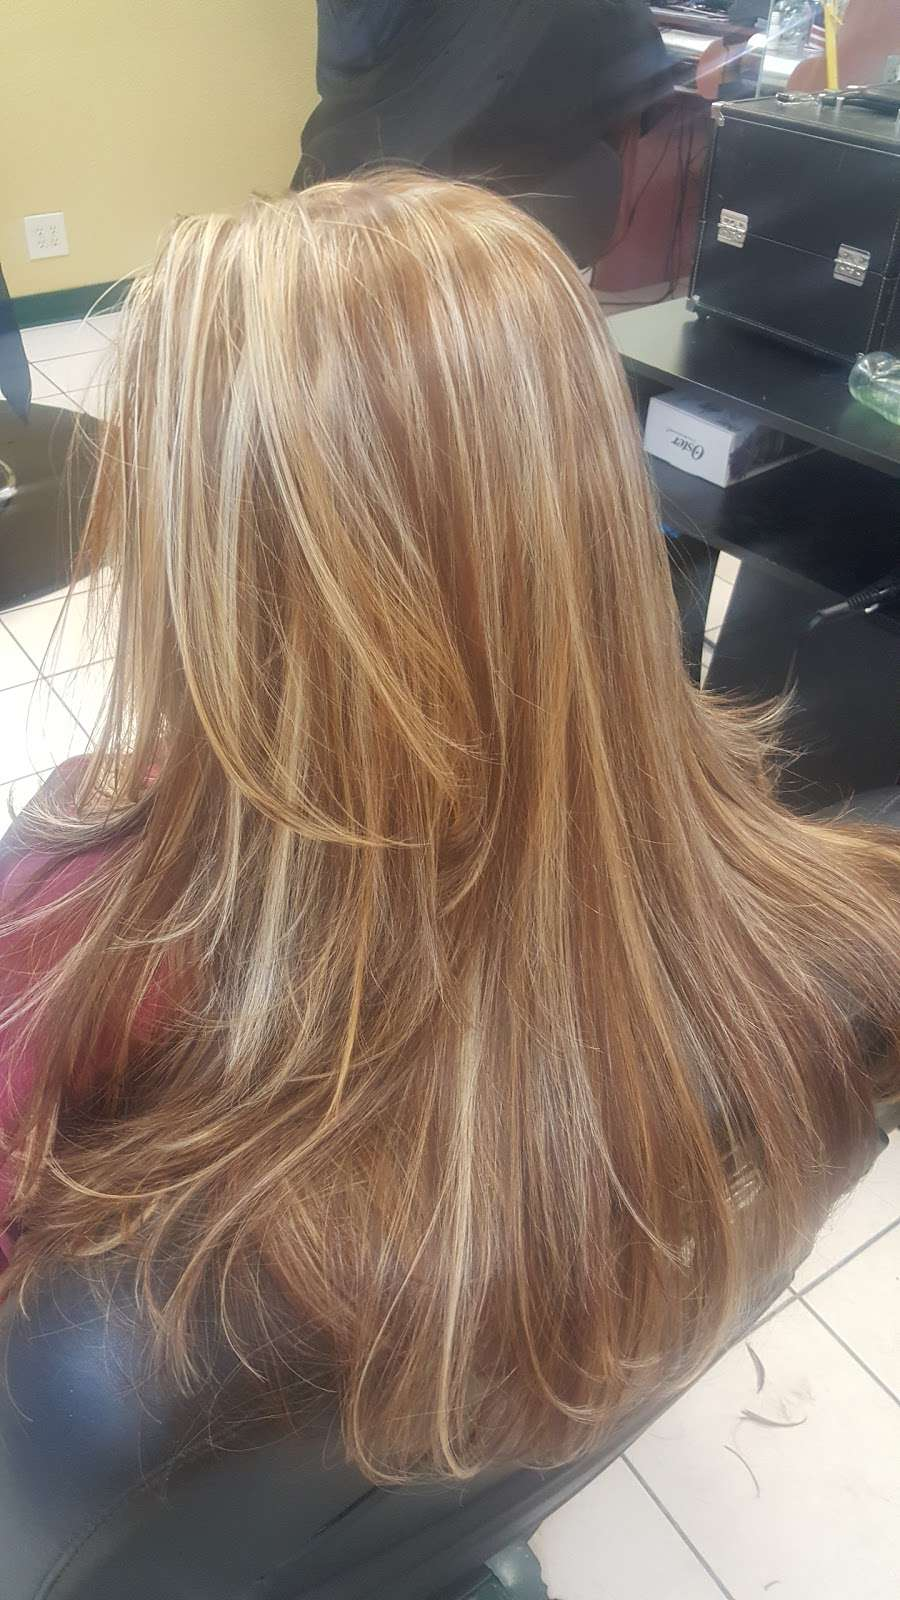 Yessenia Beauty Salon - hair care  | Photo 2 of 5 | Address: 1150 W Kiest Blvd # 400B, Dallas, TX 75224, USA | Phone: (214) 372-3669